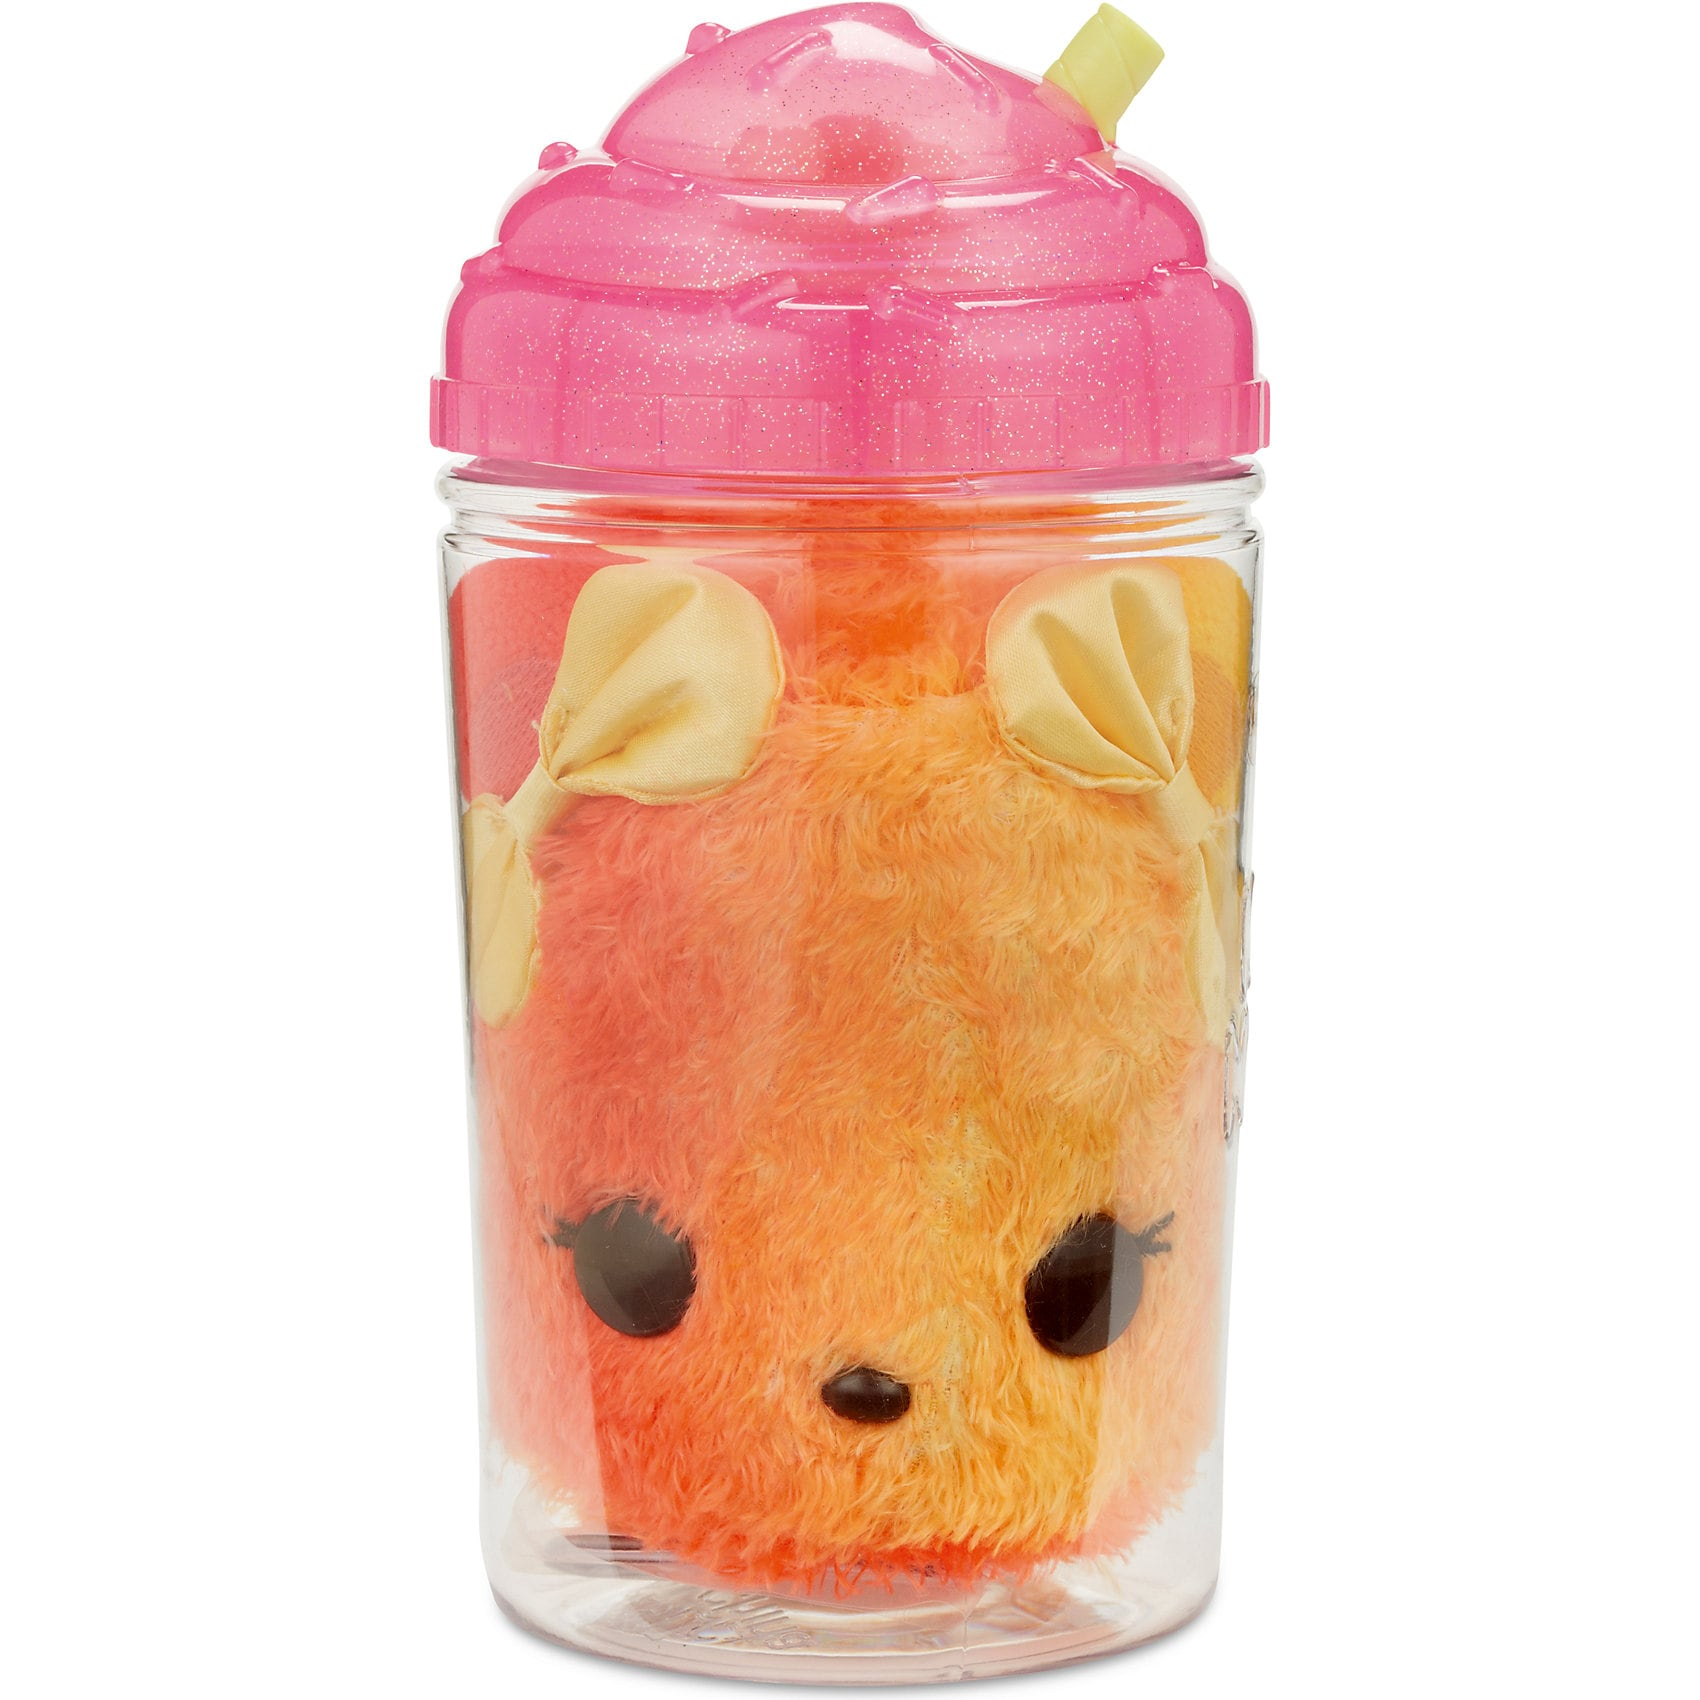 MGA Num Noms Lights Surprise in a Jar Peachy Icy